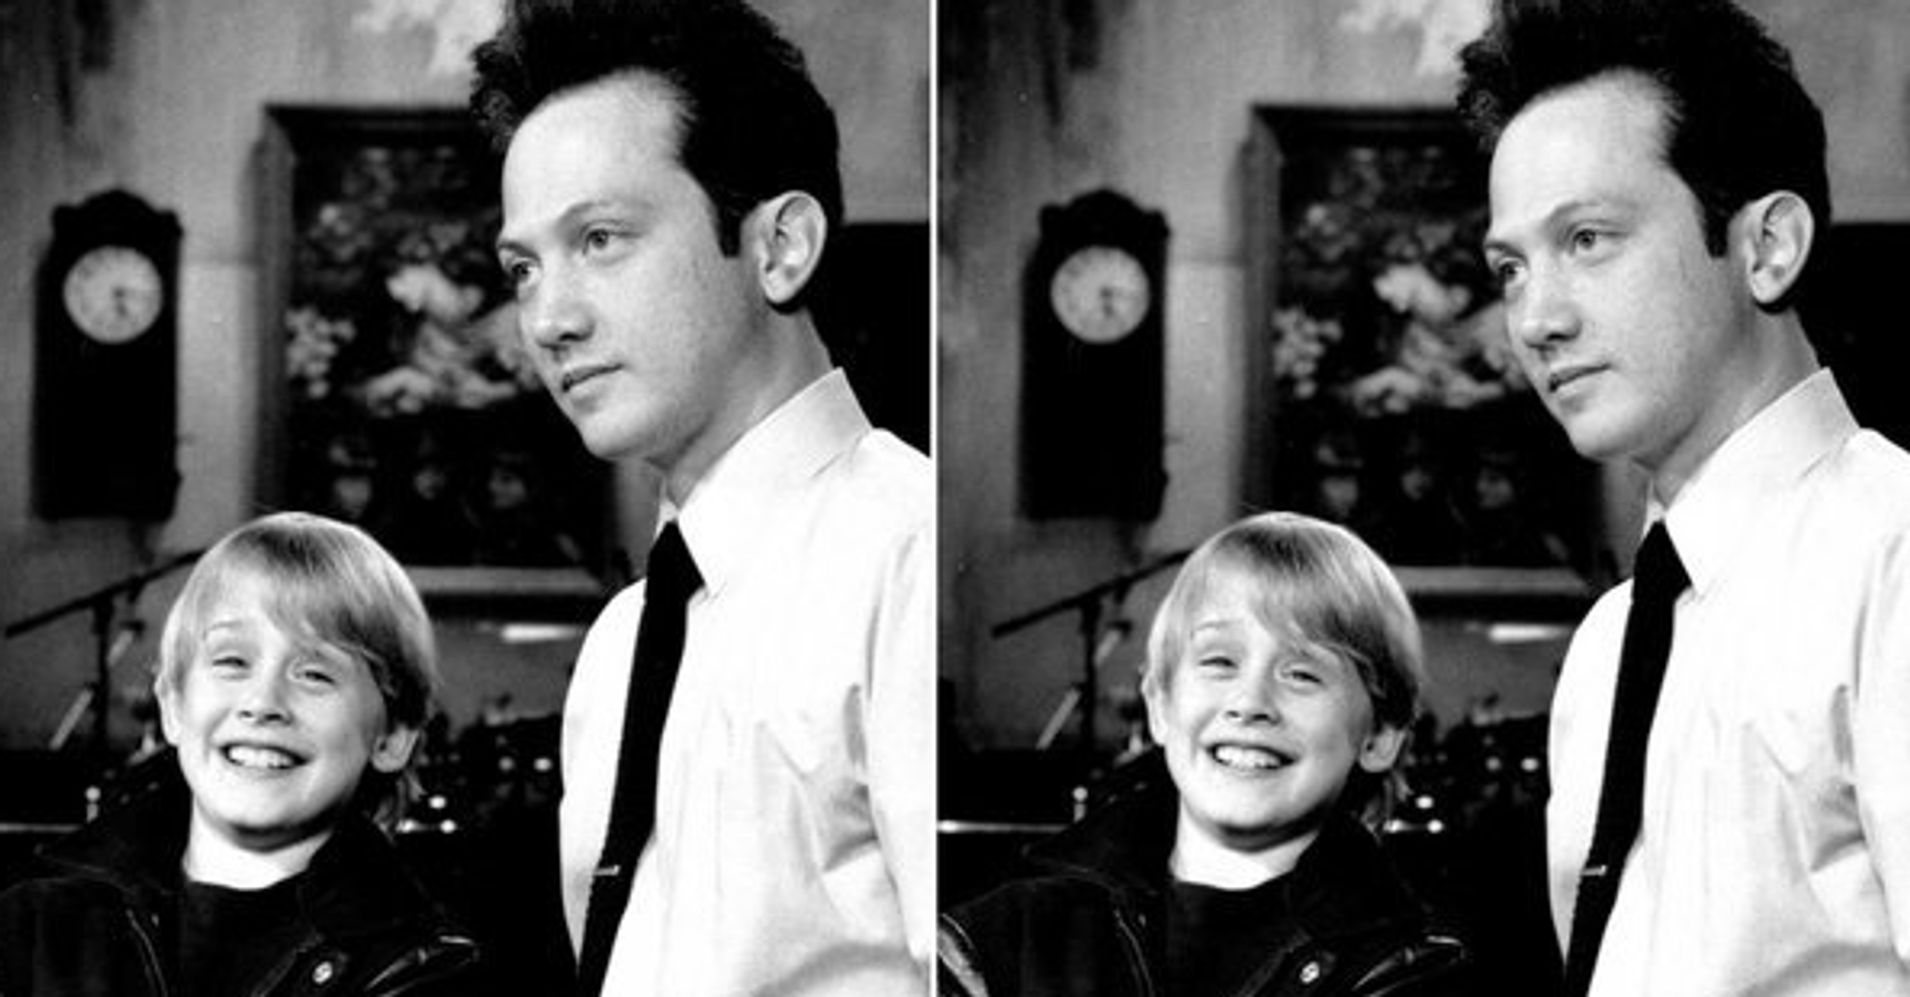 Rob Schneider Looks Back On Making 'Home Alone 2' At Peak Of Macaulay Culkin's Fame | HuffPost